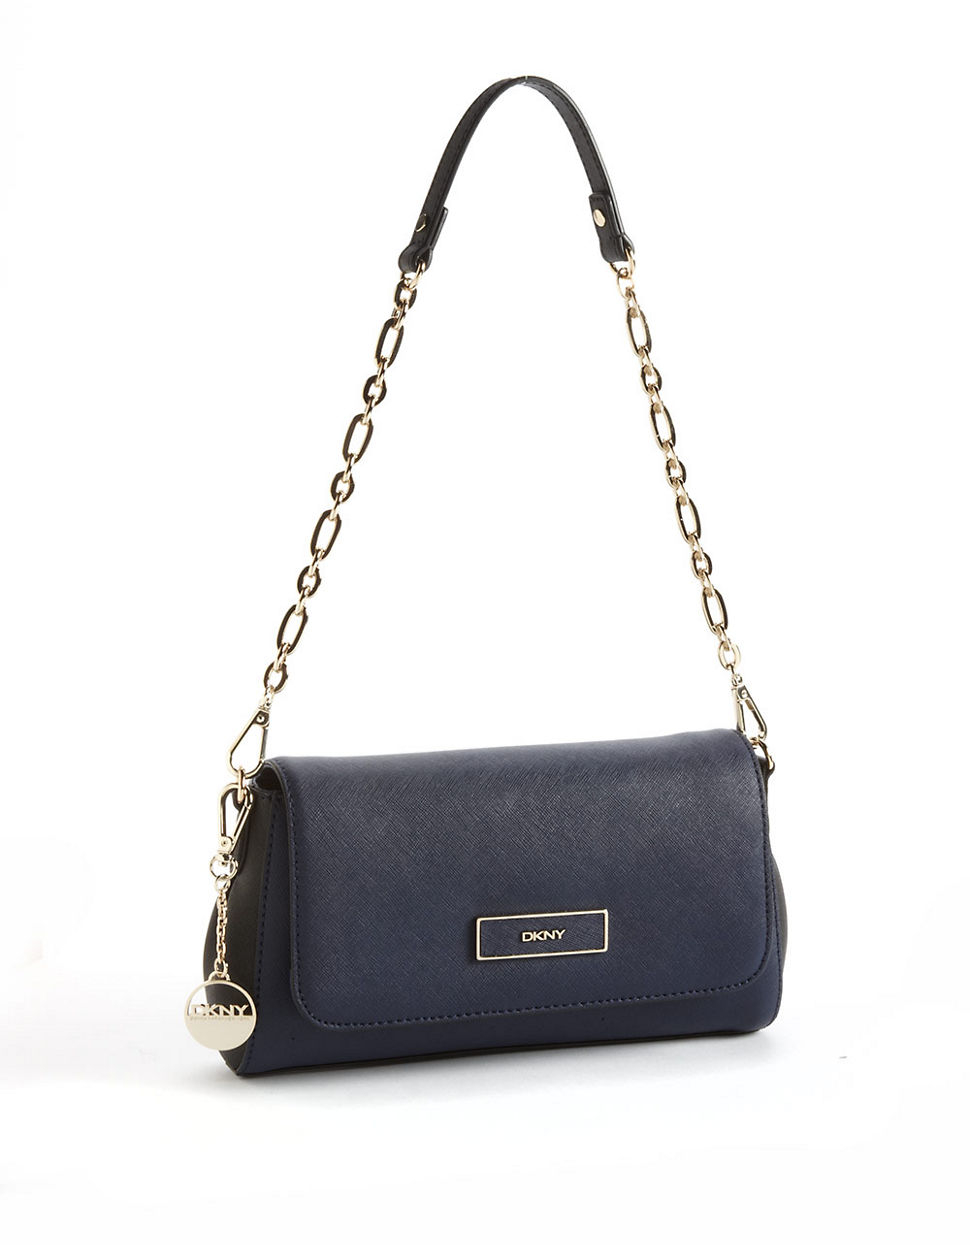 Dkny Leather Convertible Clutch Bag in Blue (NAVYBLACK)